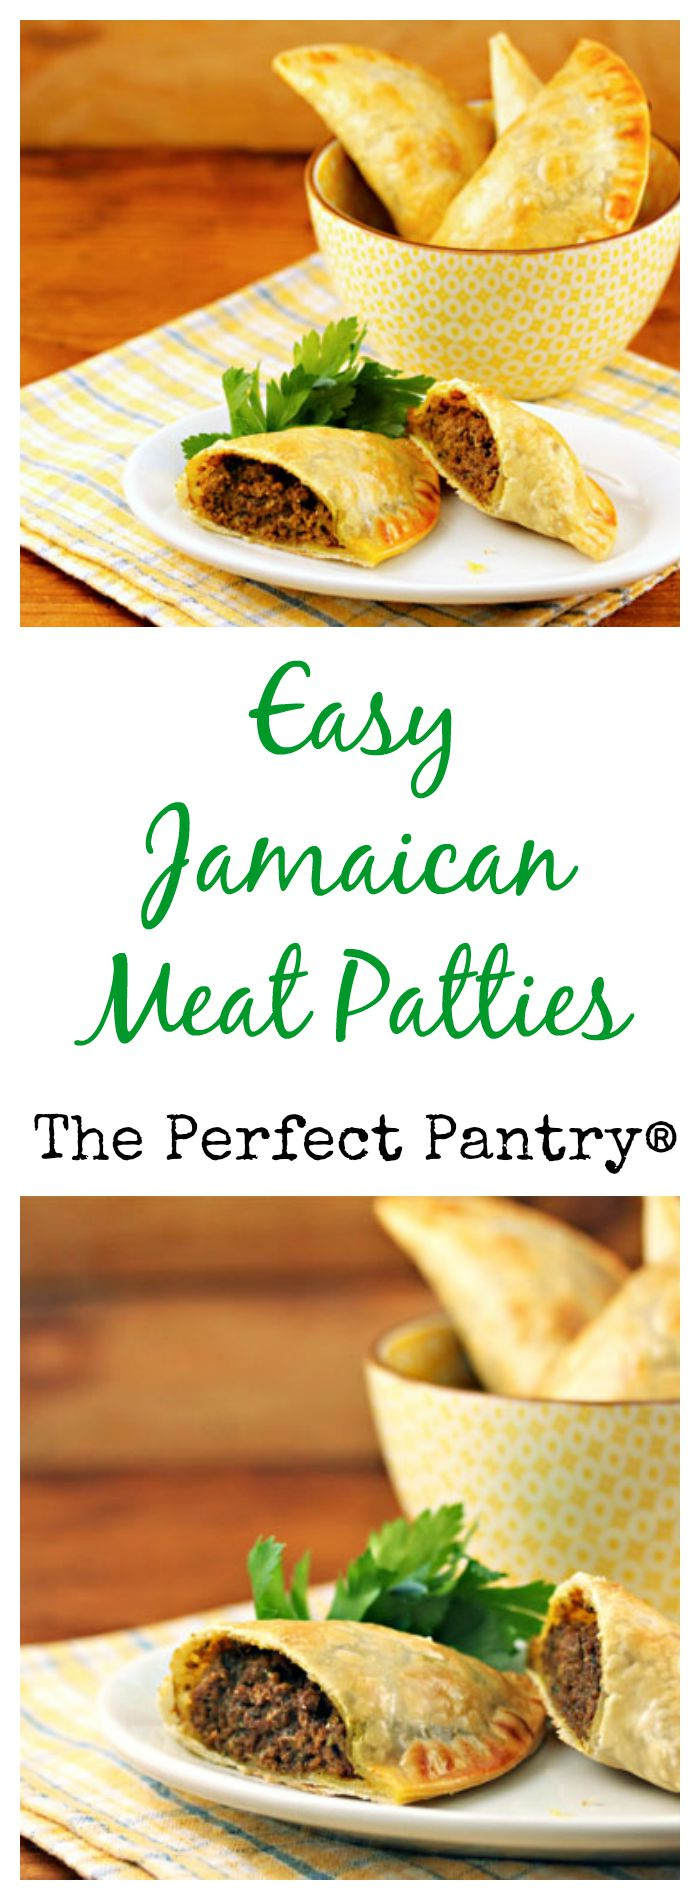 Super-easy Jamaican meat patties, from The Perfect Pantry.